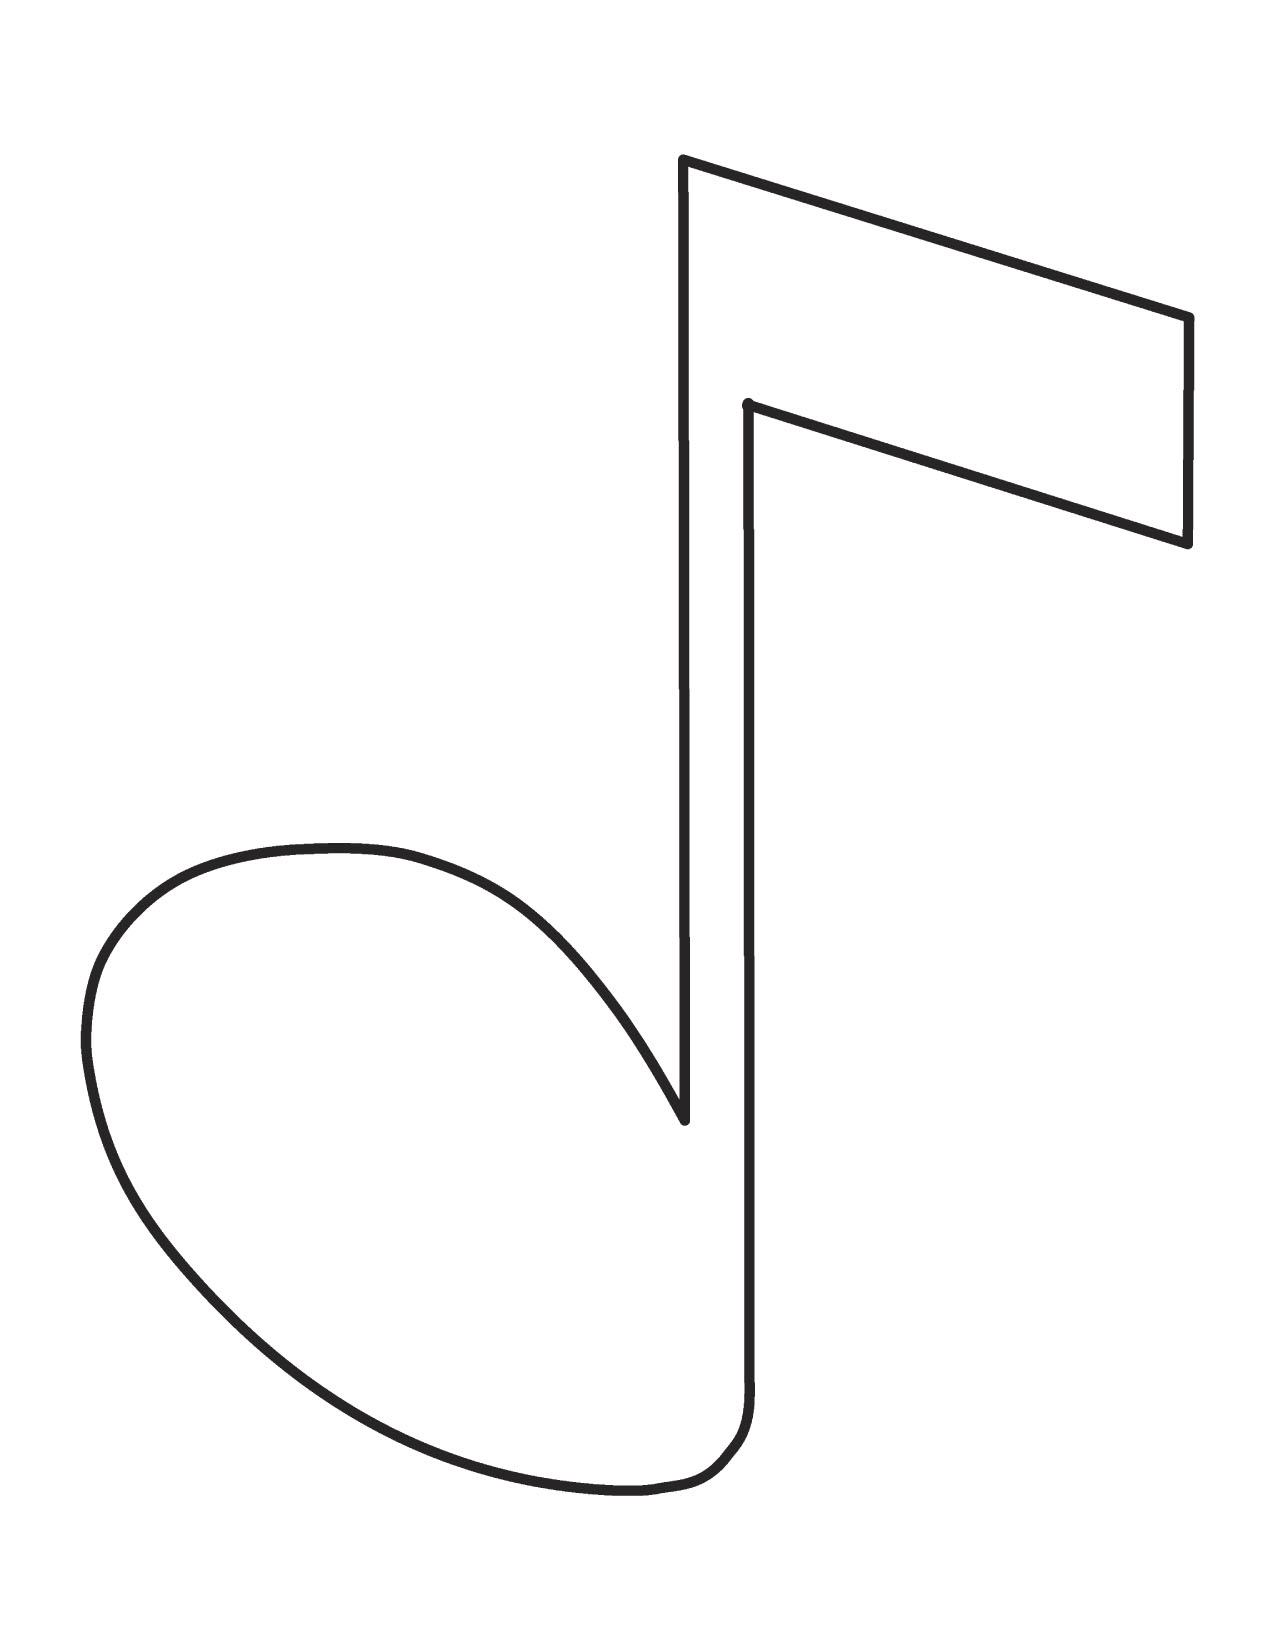 Free Printable Music Note Coloring Pages for Kids Download Of Printable Music Note Coloring Pages for Kids Collection